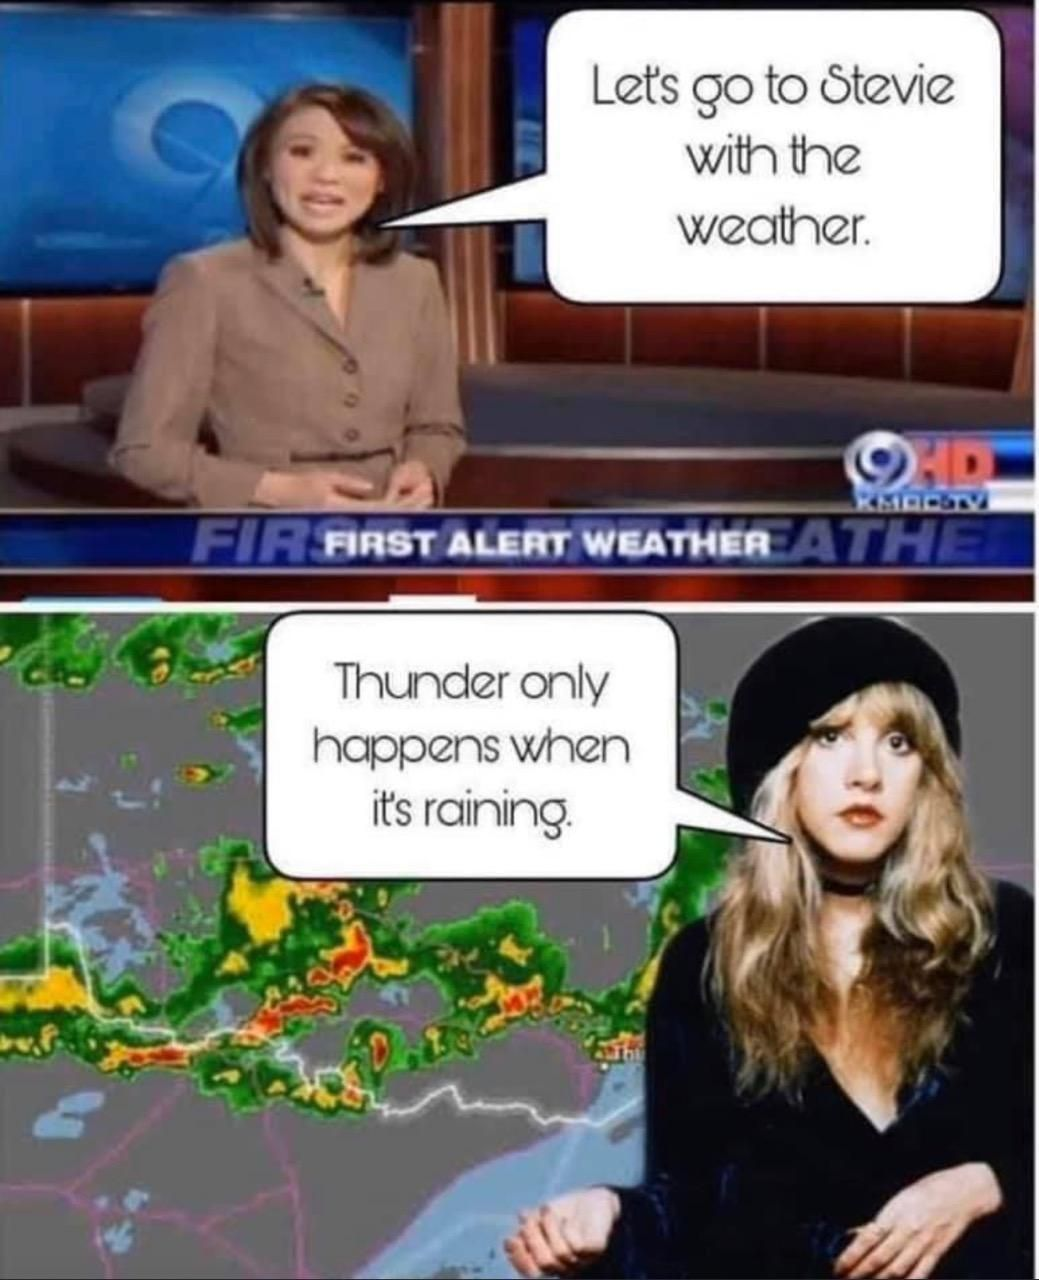 Rumor has it she's the new weather girl